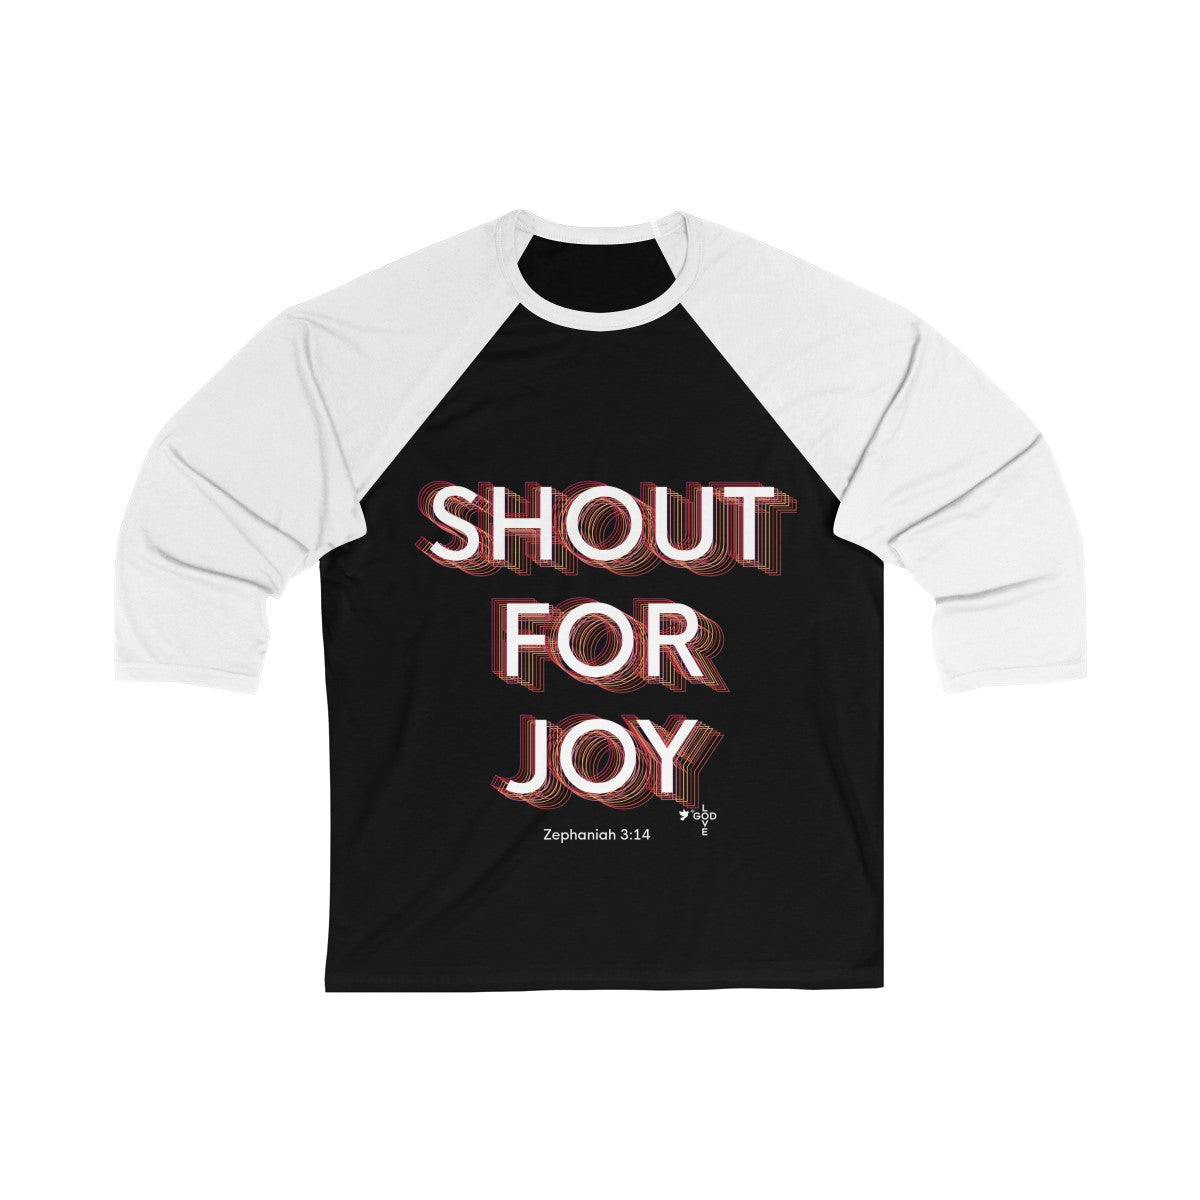 Shout For Joy Unisex 3/4 Sleeve Baseball Tee